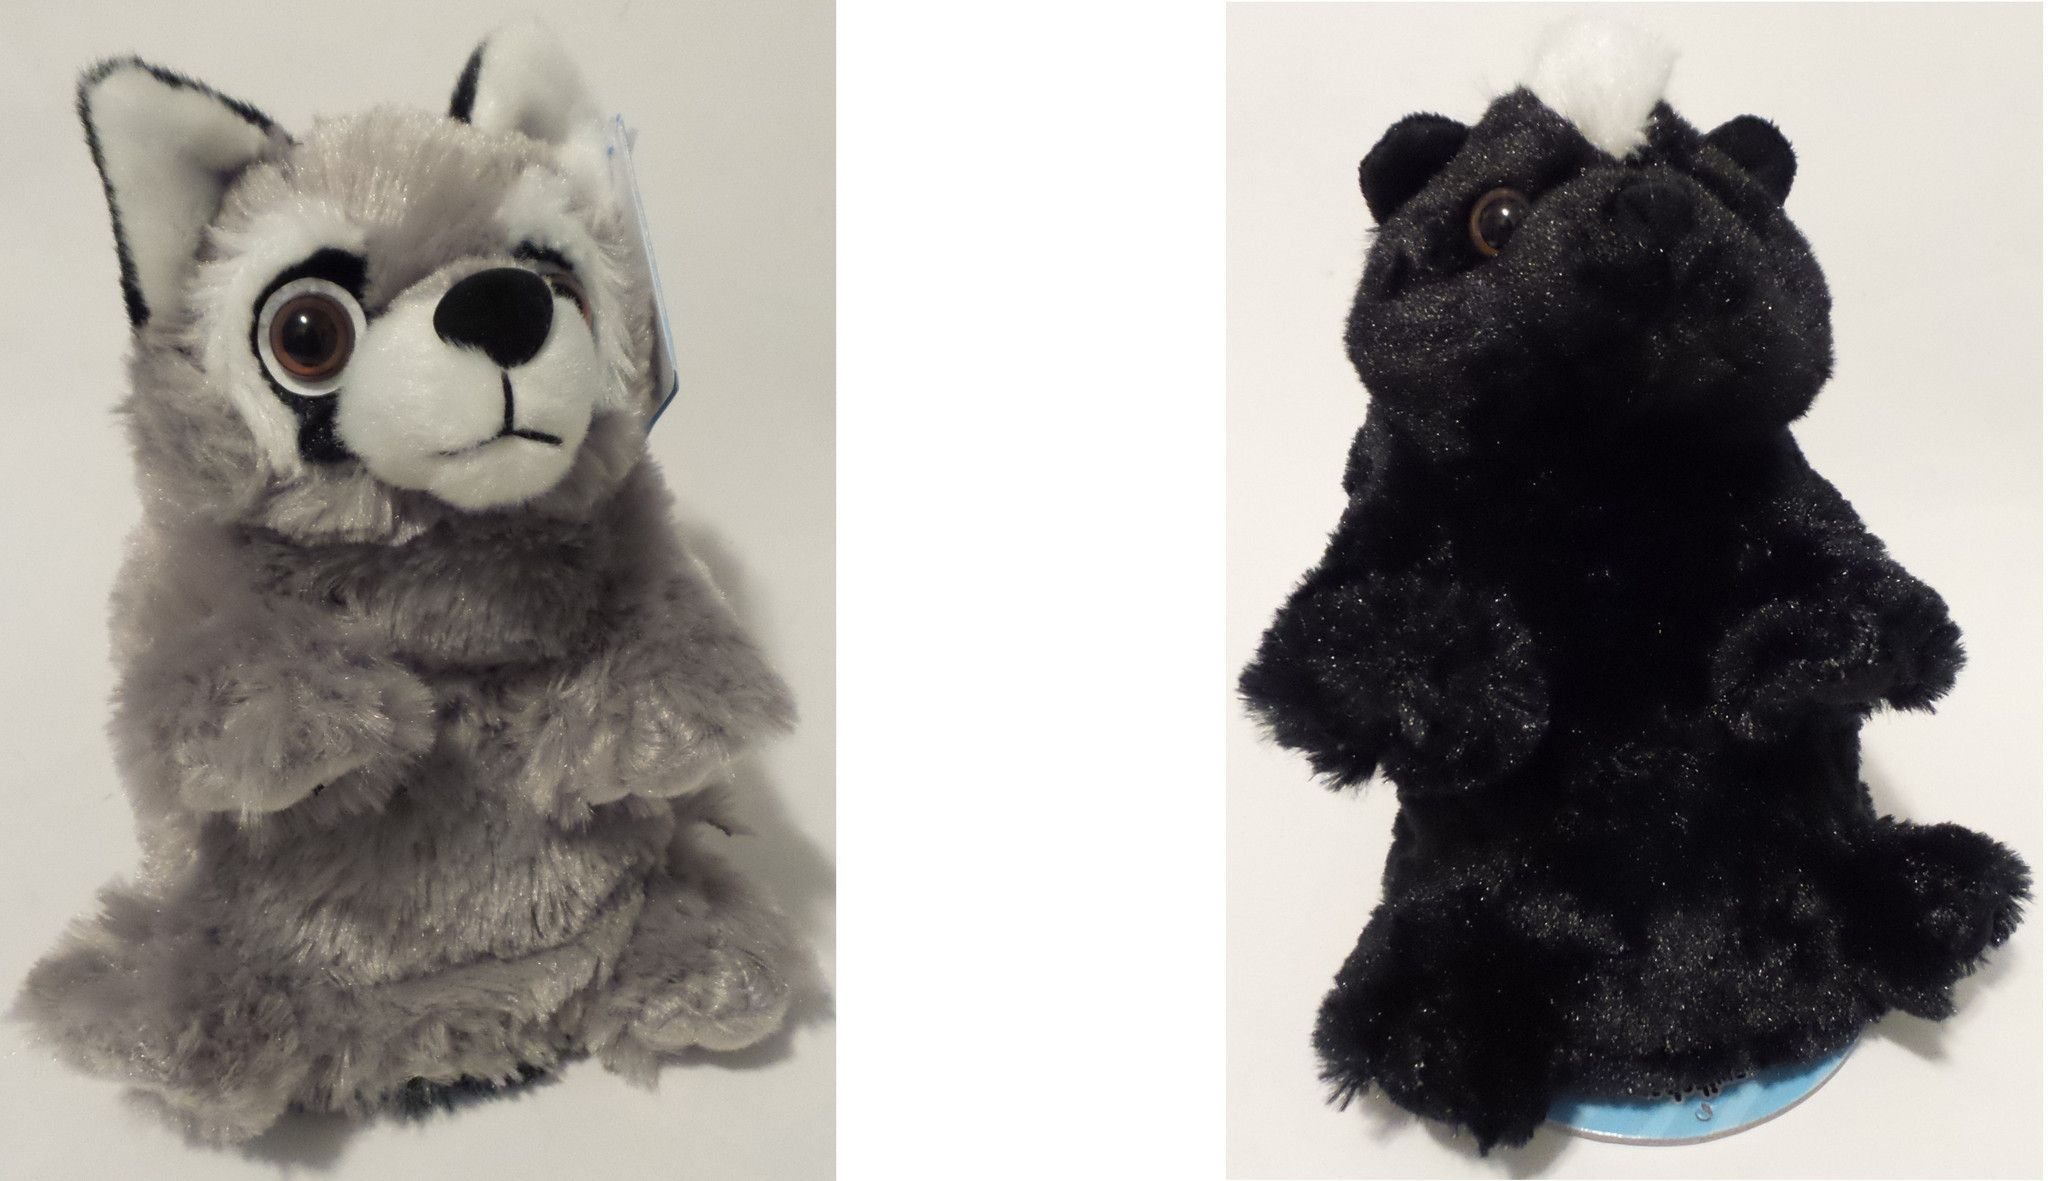 Wild Republic Switch A Rooz Reversible 7in. Plush Toy Bandit the Raccoon and Blooms the Skunk